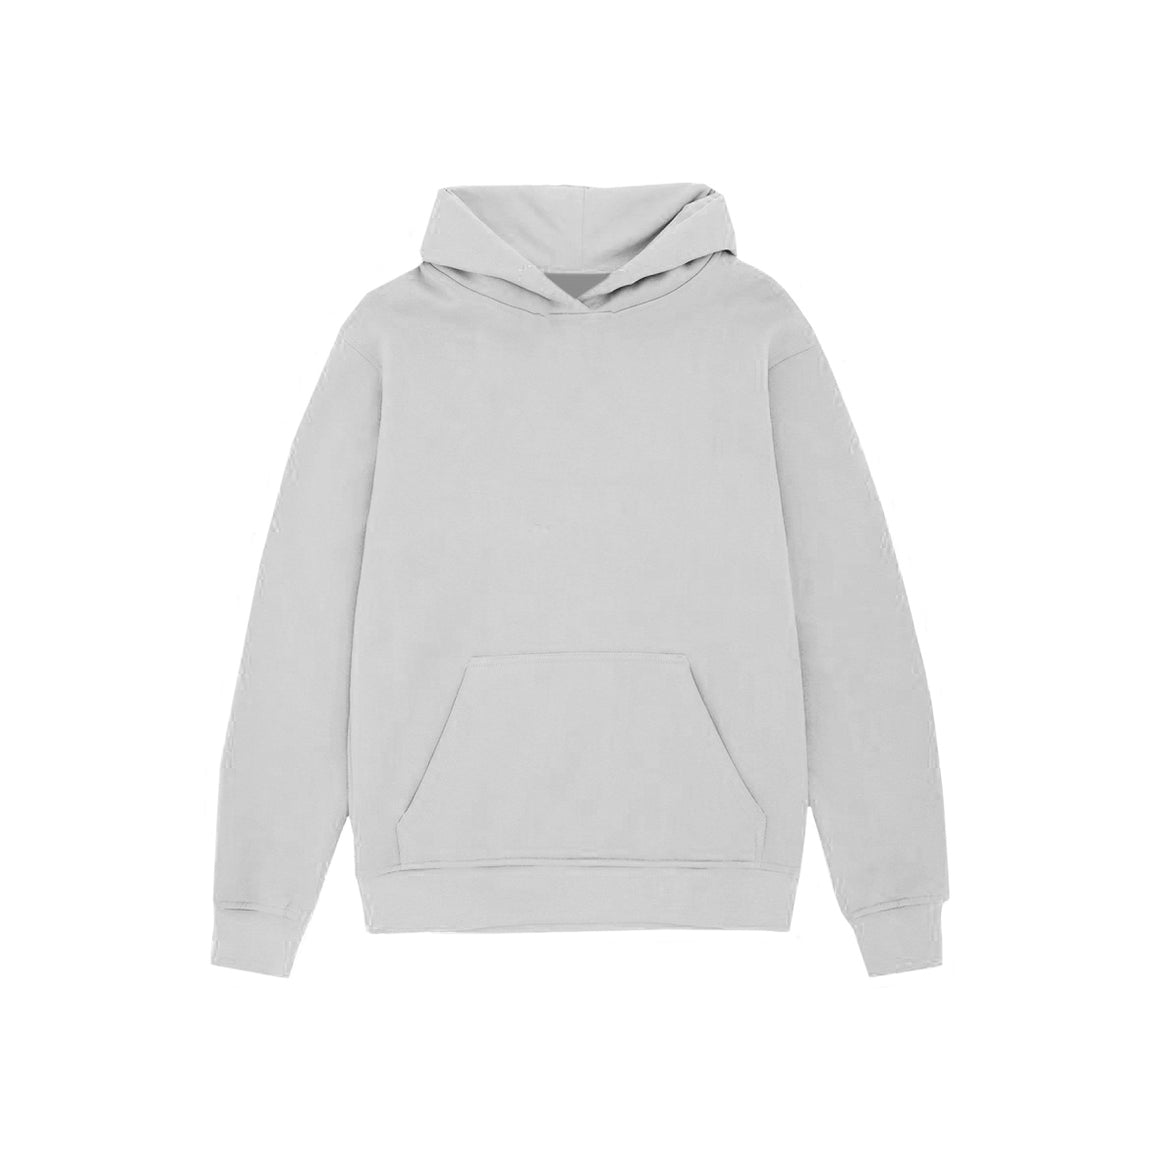 UNBRANDED ESSENTIAL PULLOVER HOODY | SILVER